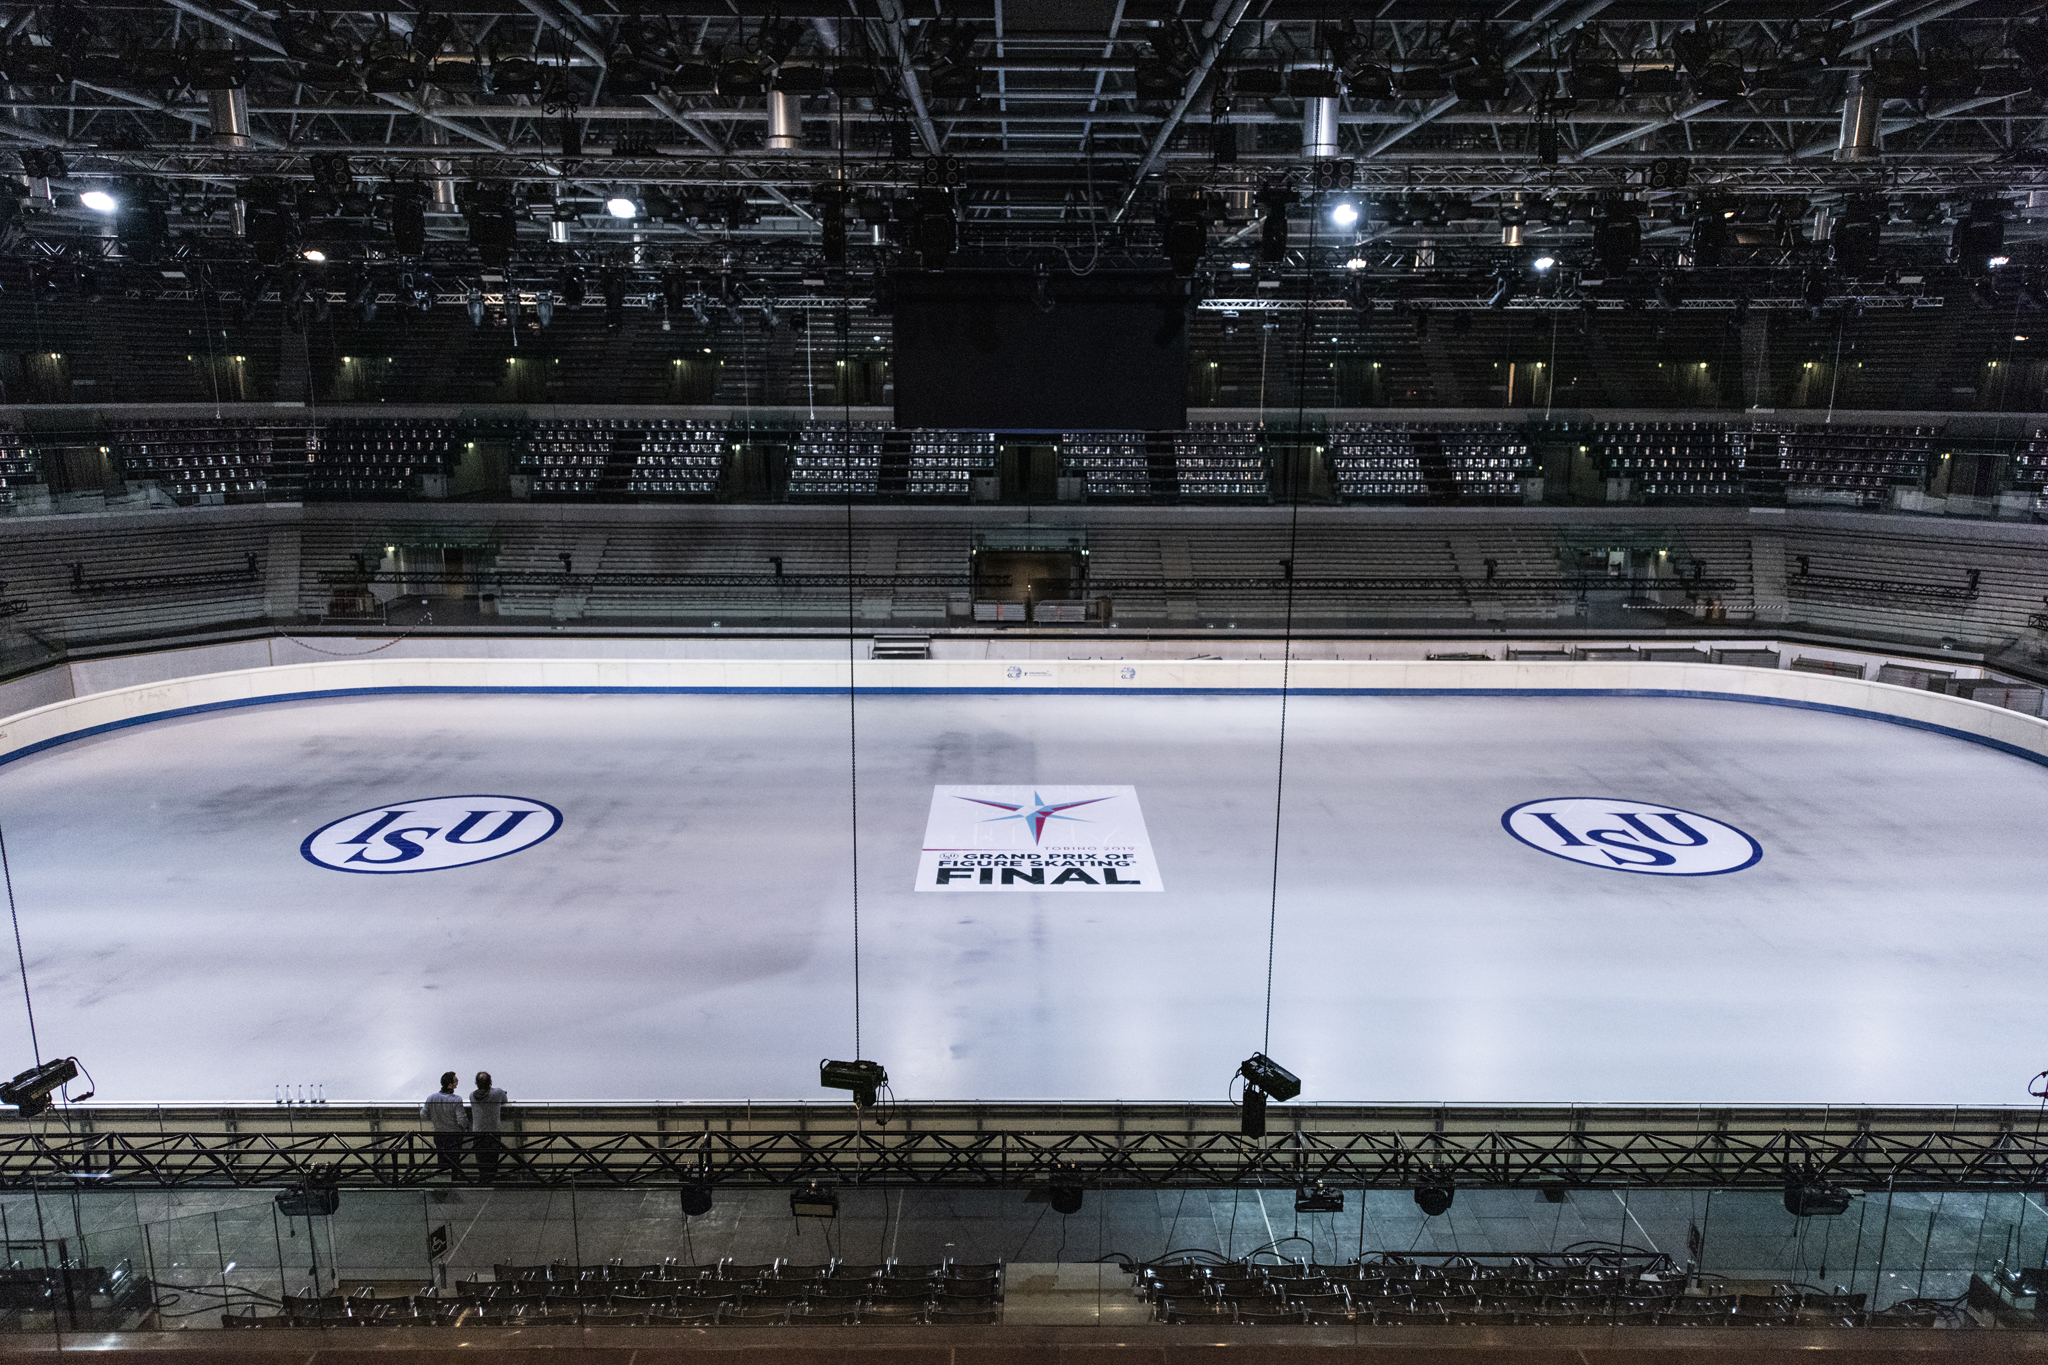 ISU Grand Prix of Figure Skating Final (Senior & Junior). Dec 05 - Dec 08, 2019.  Torino /ITA  - Страница 2 EKoD7VdX0AI_xpu?format=jpg&name=4096x4096